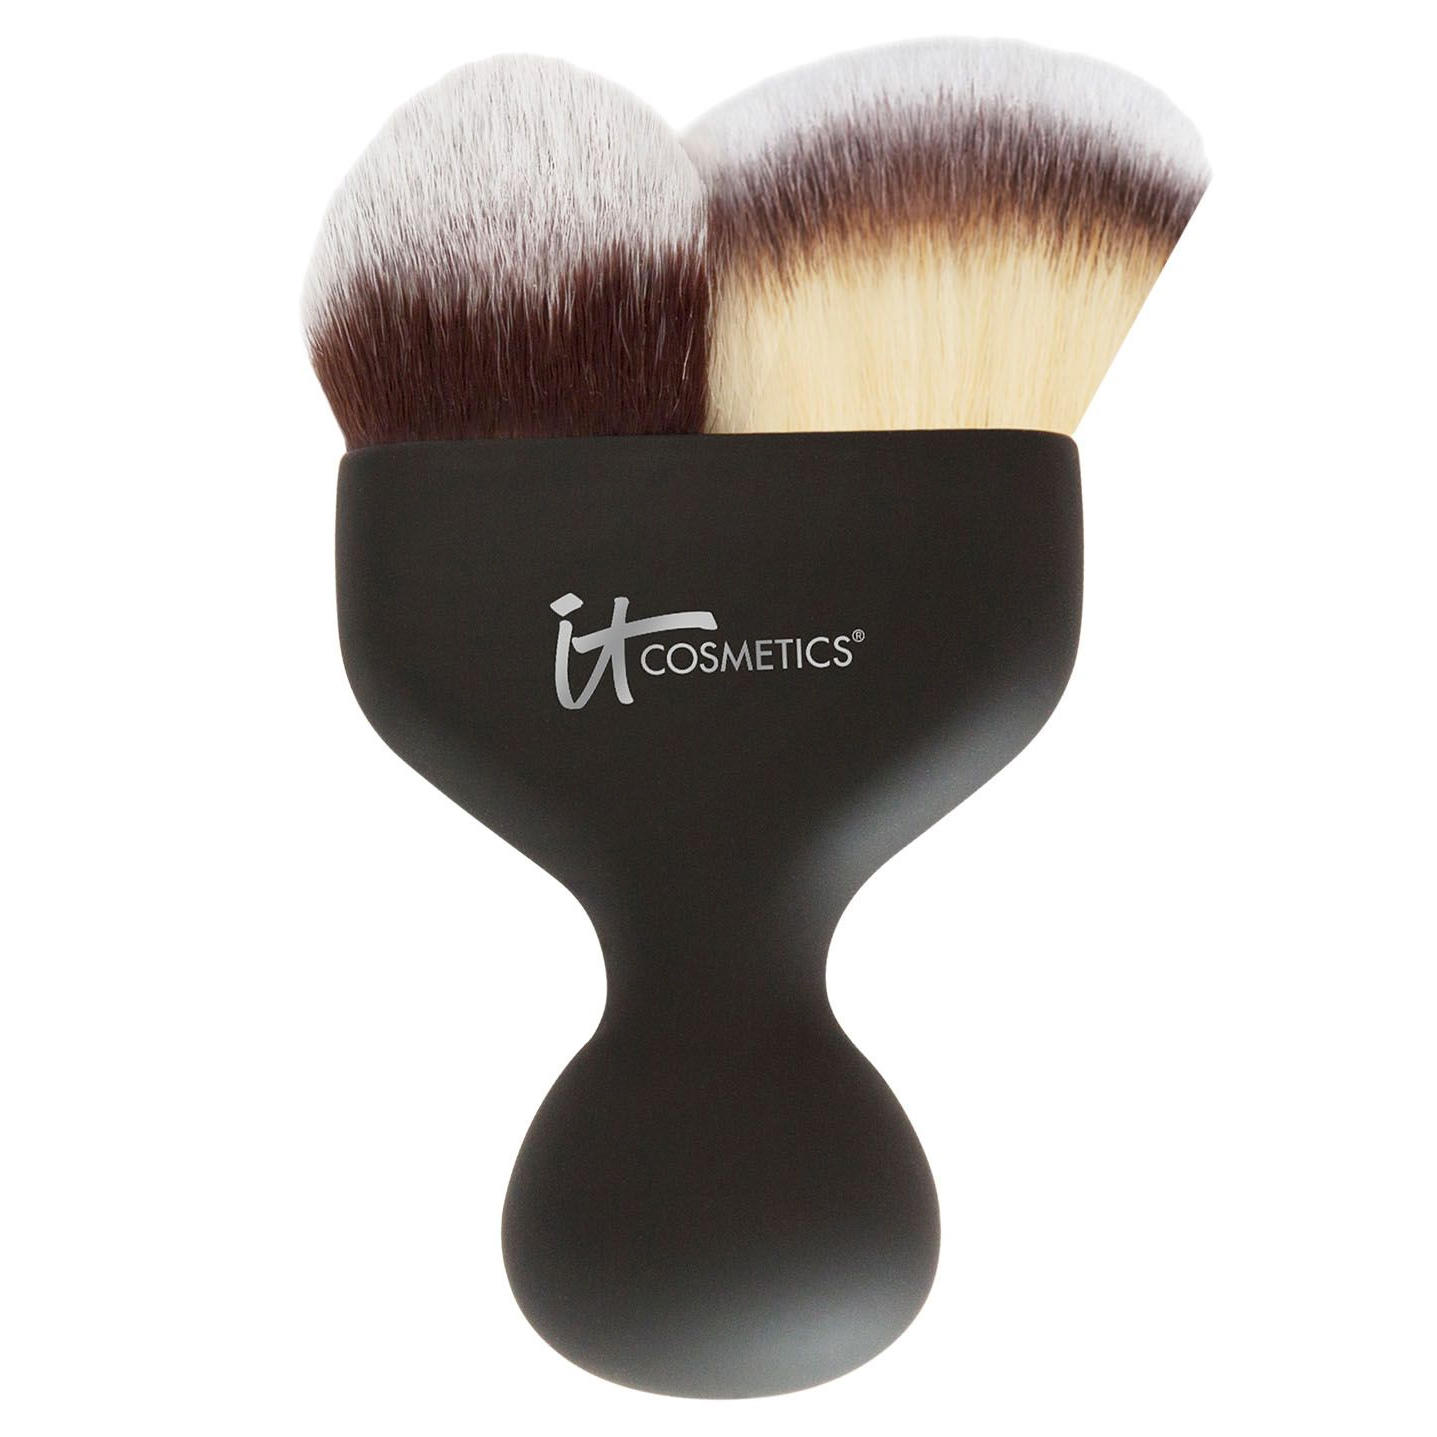 IT Cosmetics Heavenly Luxe Hello Cheekbones Contour Brush 19